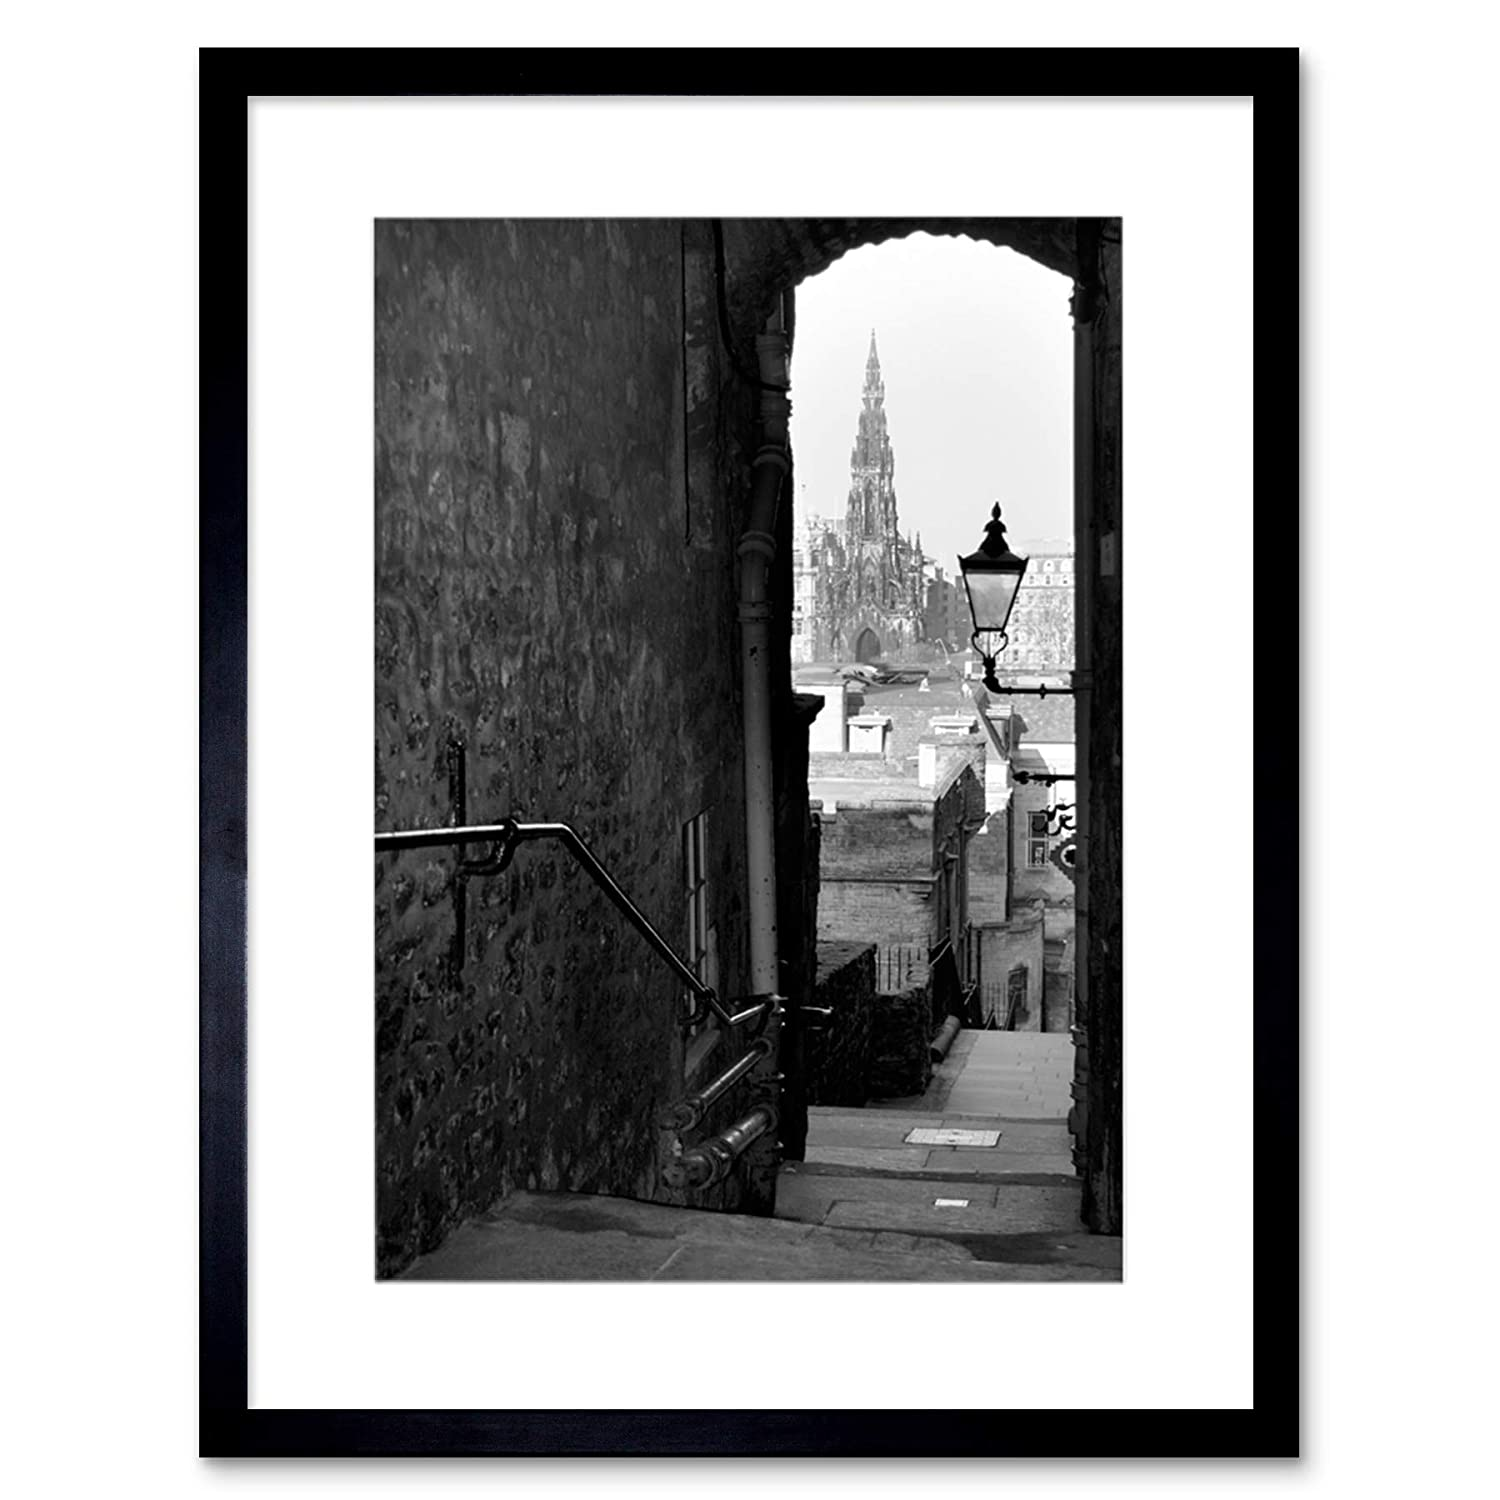 Wee blue coo photo cityscape edinburgh royal mile lane black white framed wall art print amazon co uk kitchen home